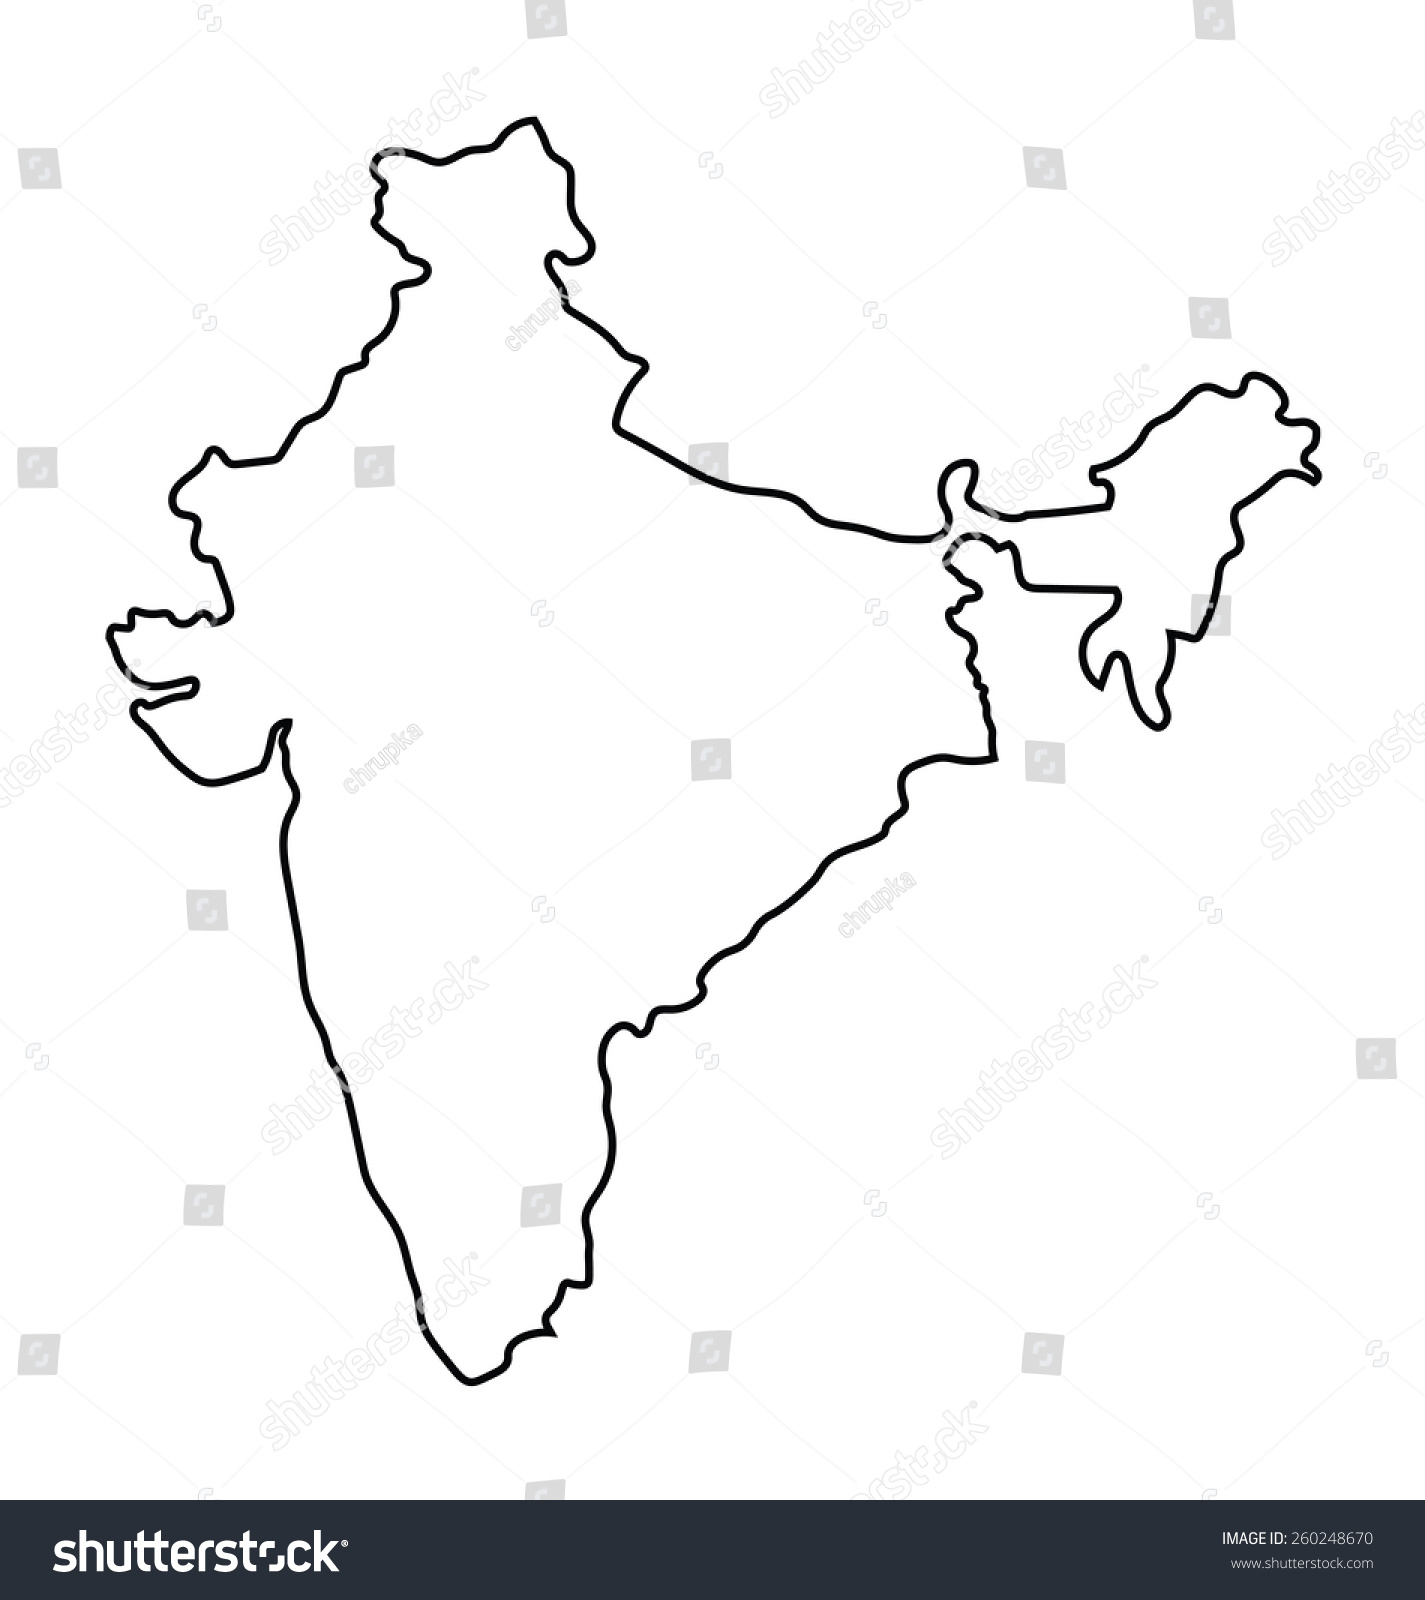 Black outline india map stock vector 260248670 shutterstock black outline of india map gumiabroncs Choice Image